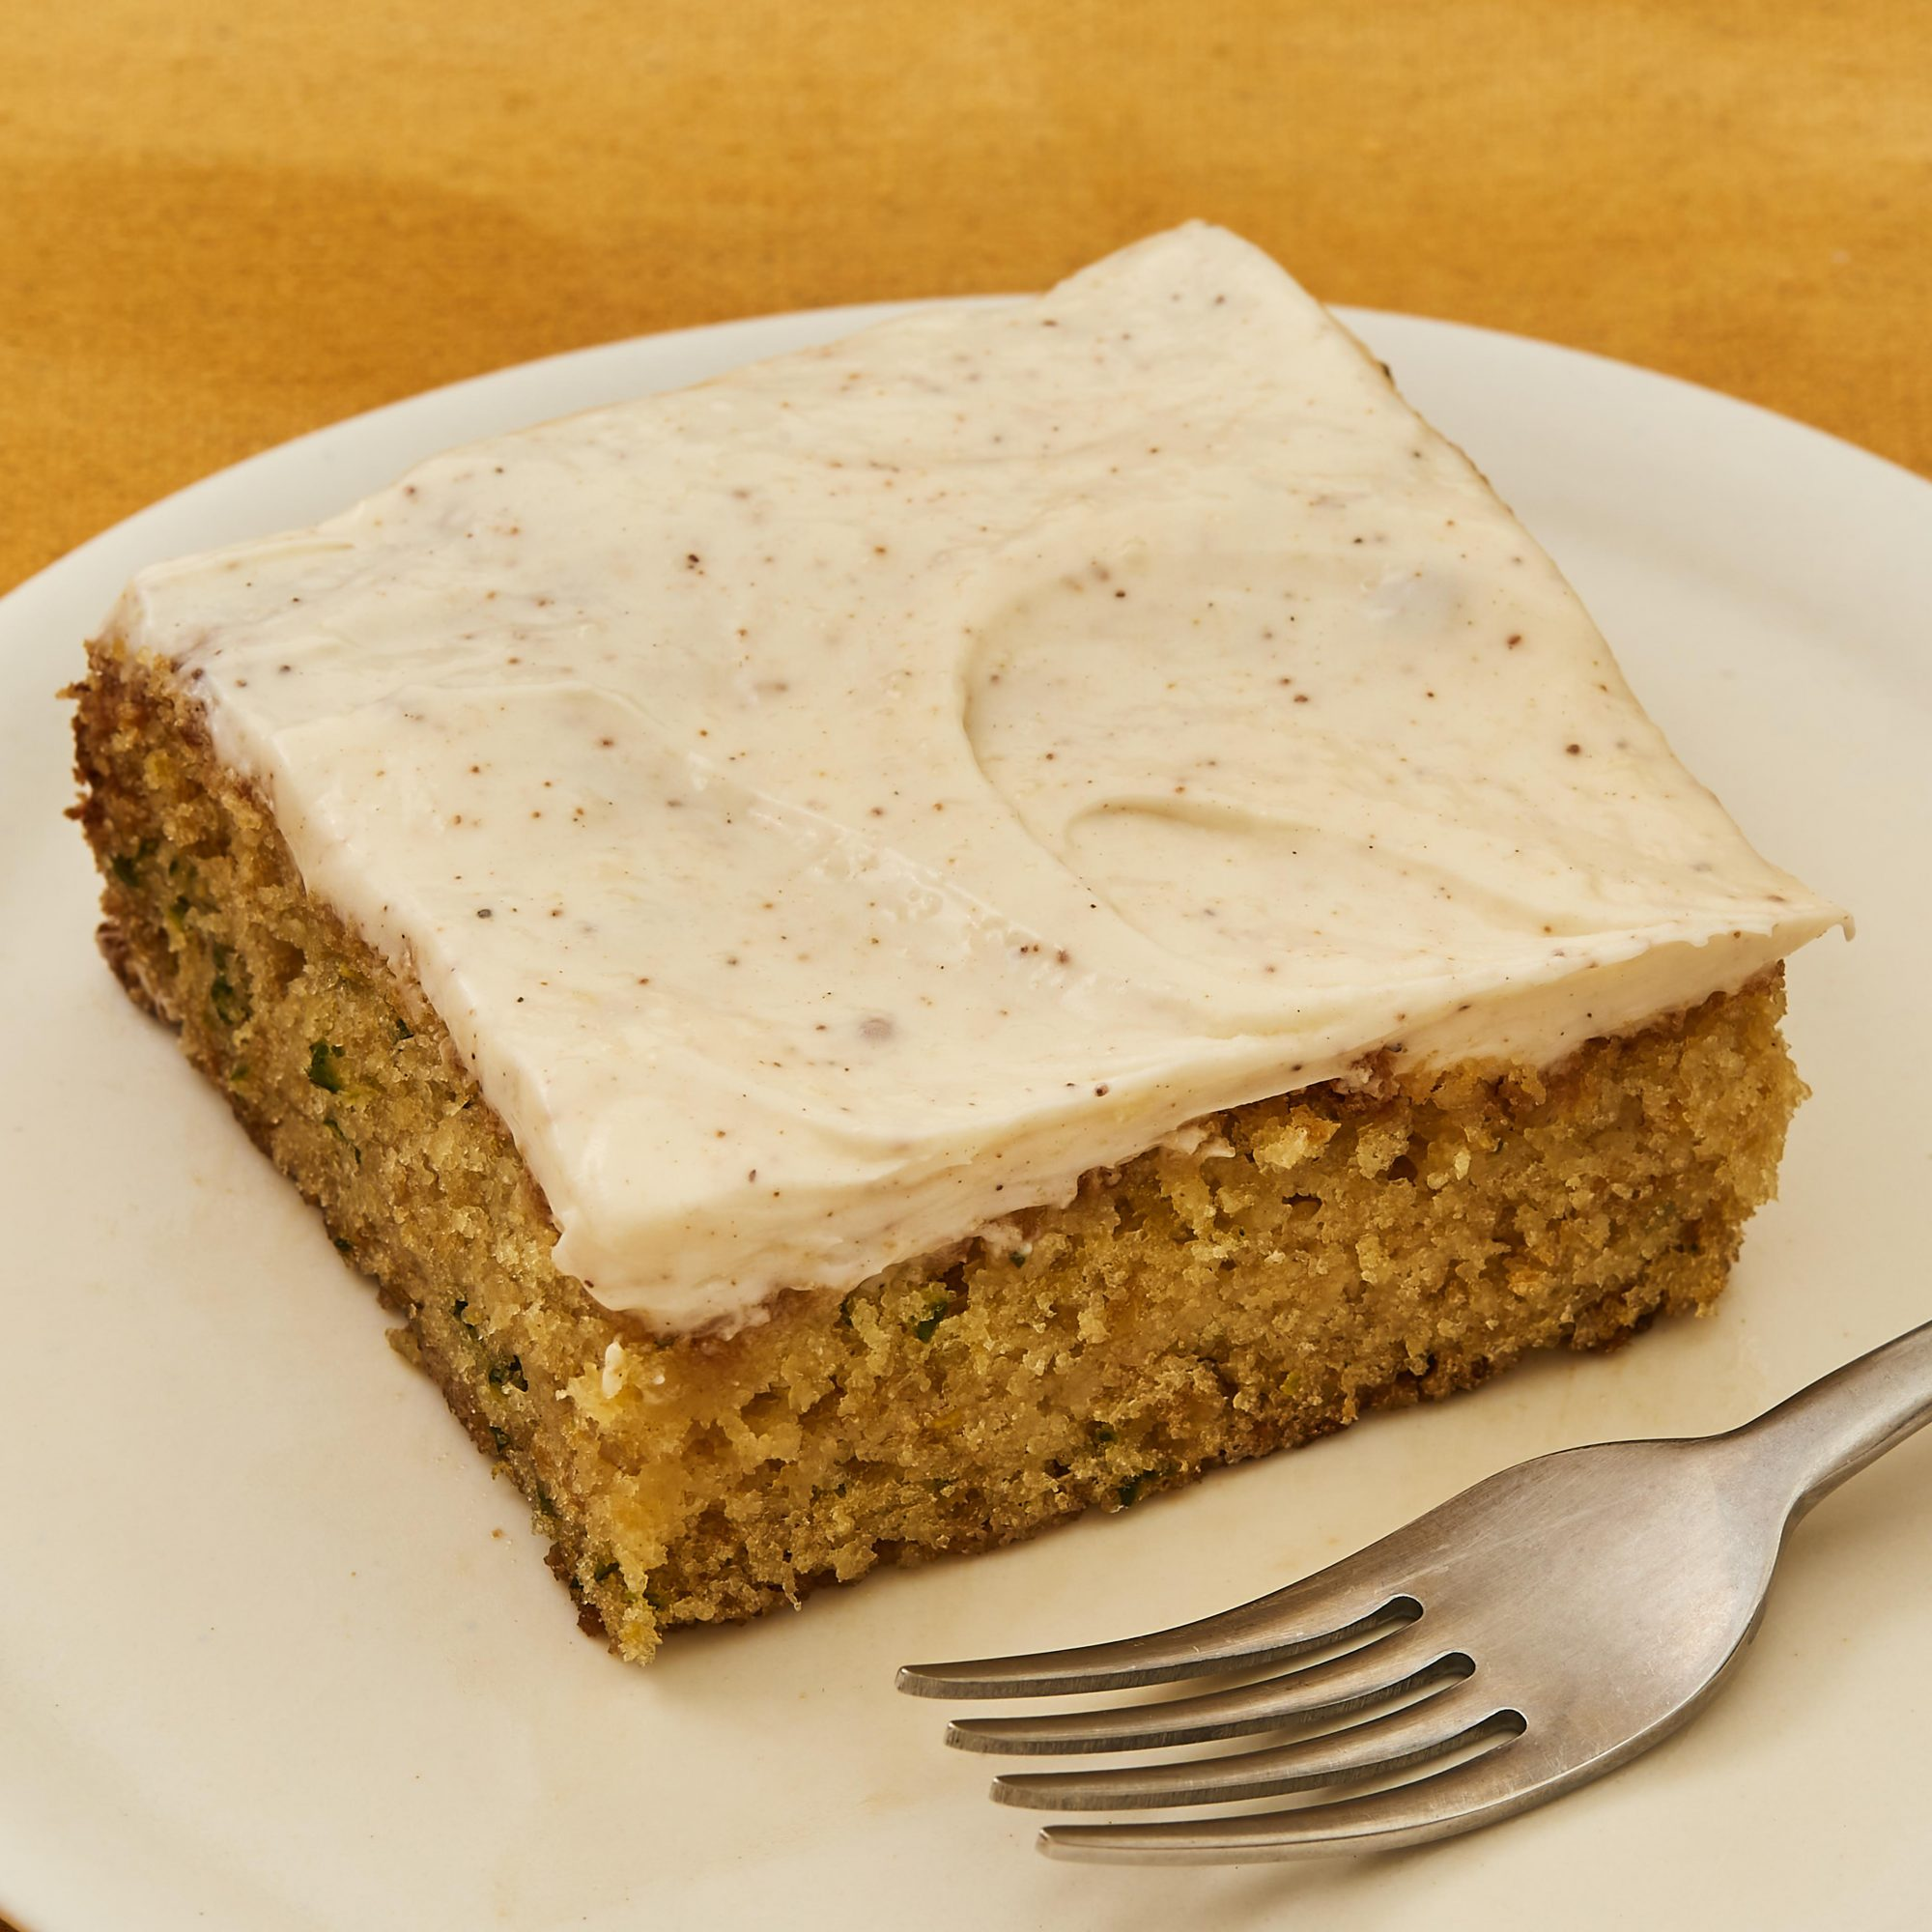 Slice of zucchini cake frosted with cream cheese applesauce icing